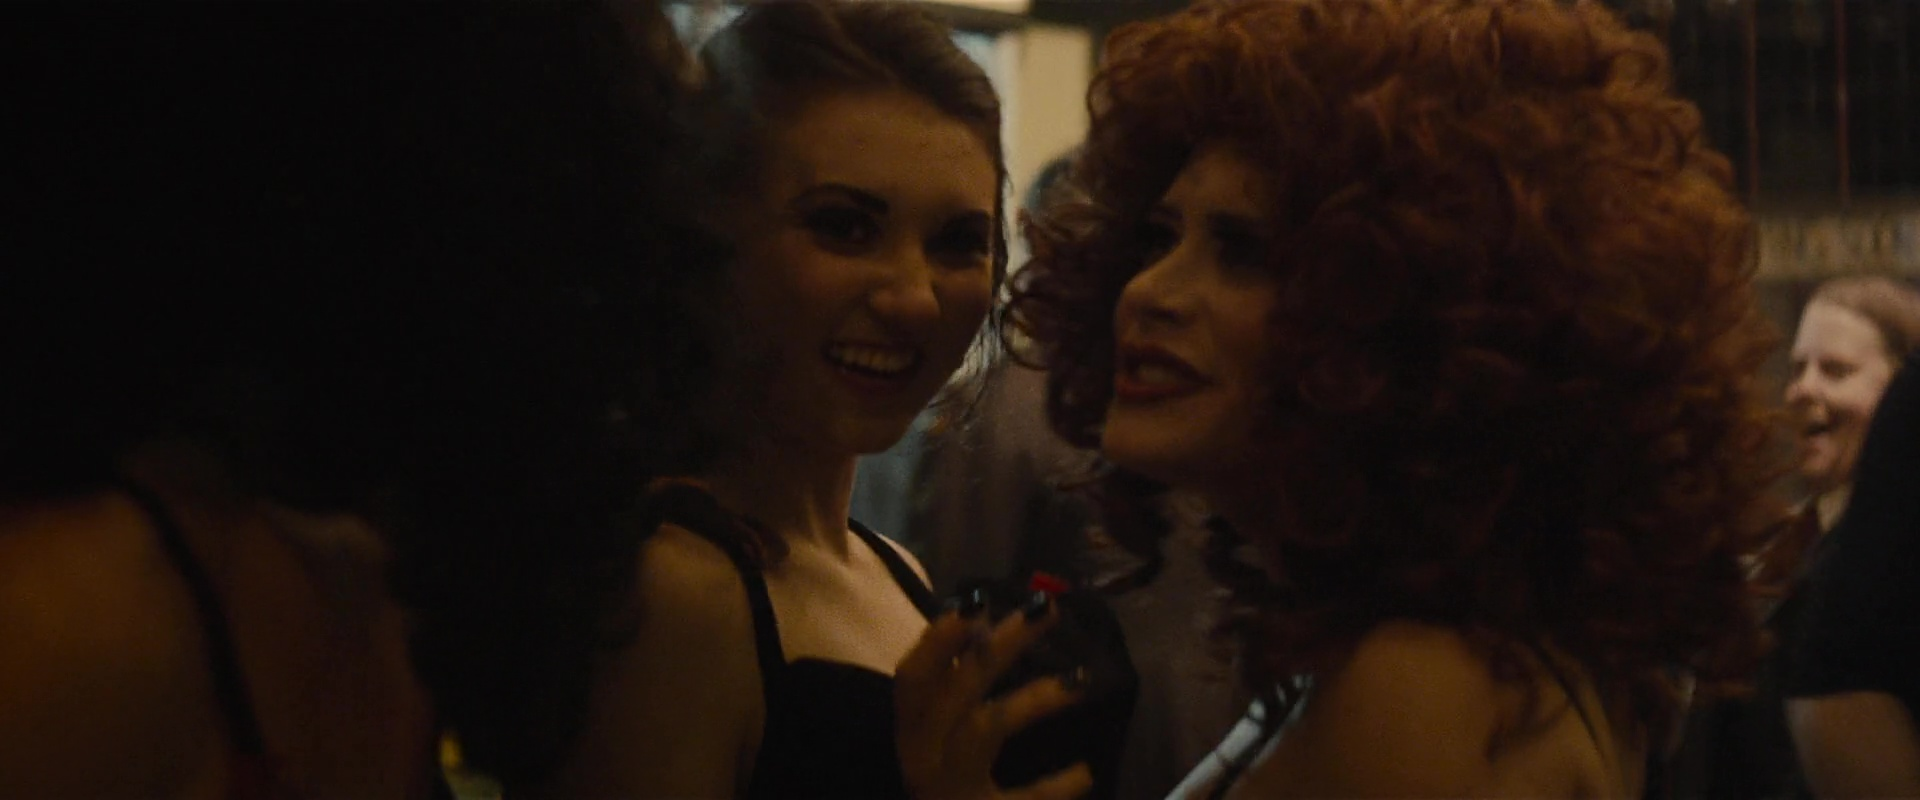 The Diary of a Teenage Girl film still 3